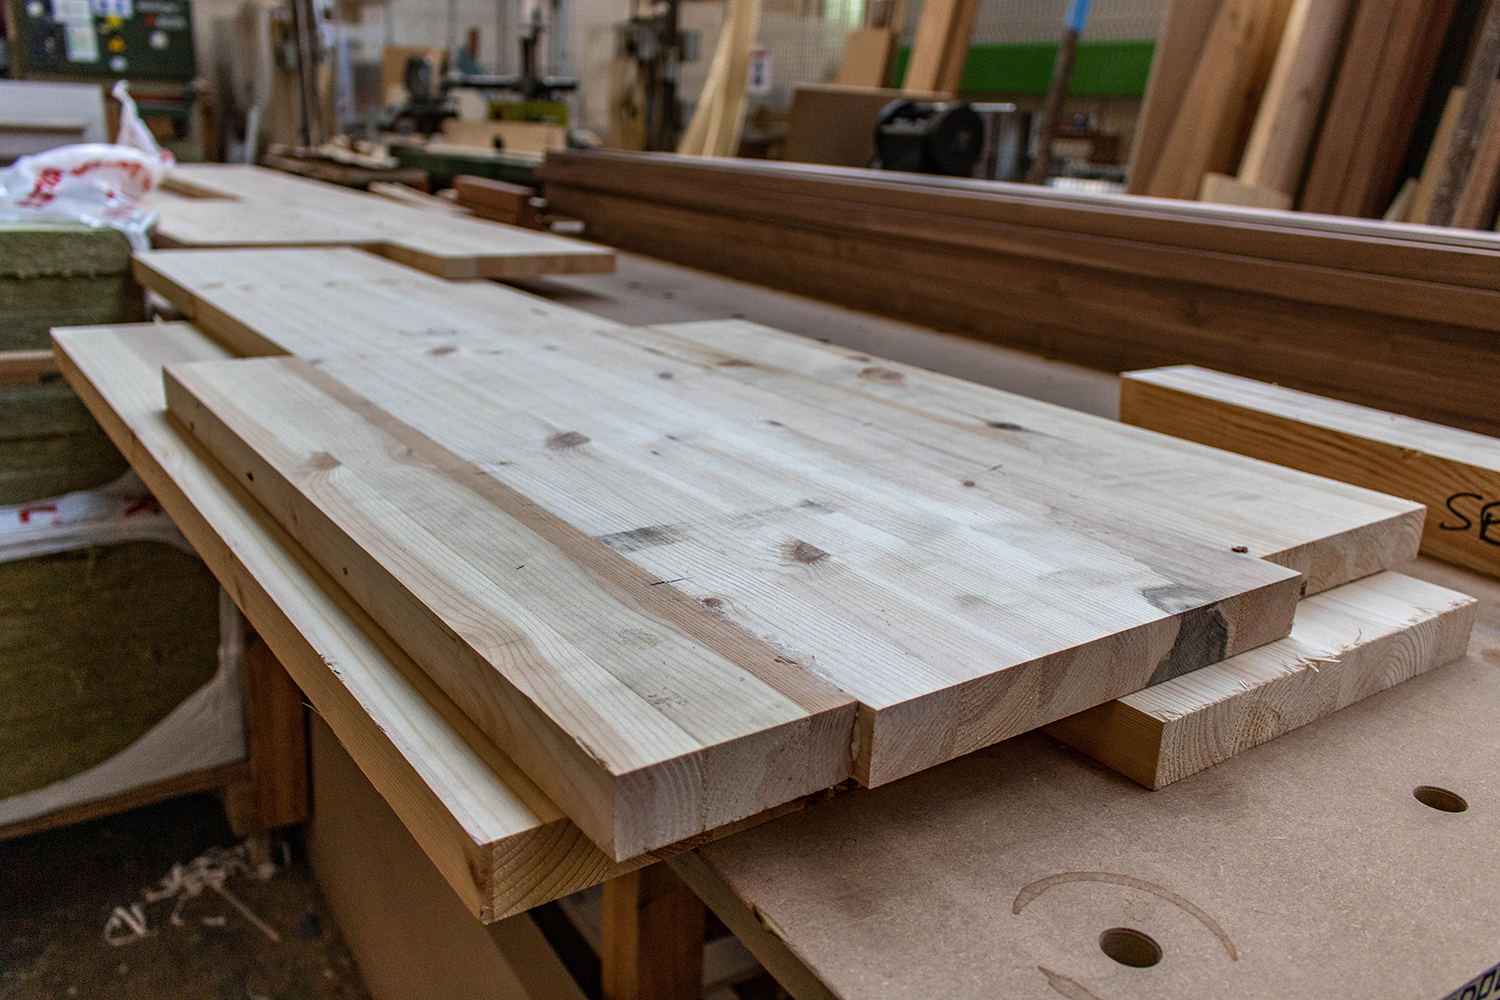 Set of cut wooden planks in joinery workshop